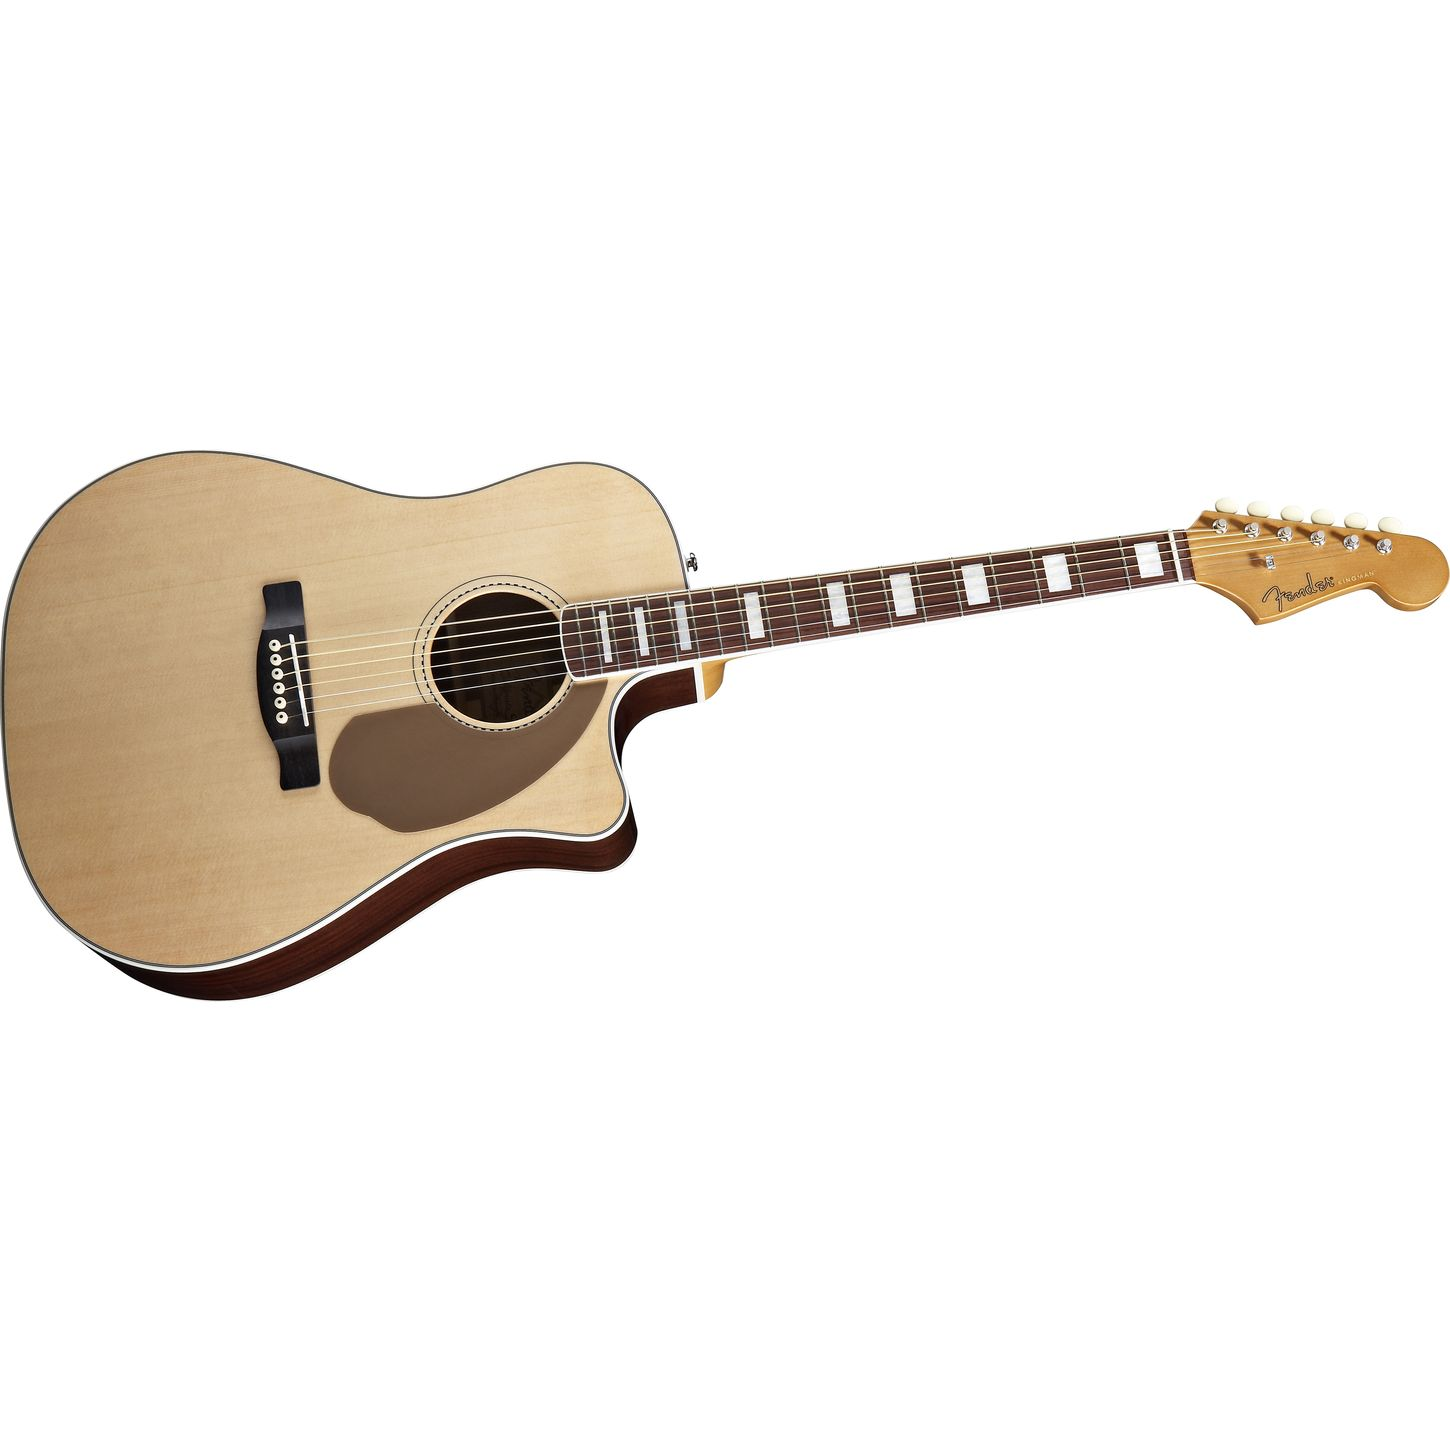 Fender Acoustic Electric Guitar : musician 39 s friend site map musician 39 s friend ~ Vivirlamusica.com Haus und Dekorationen